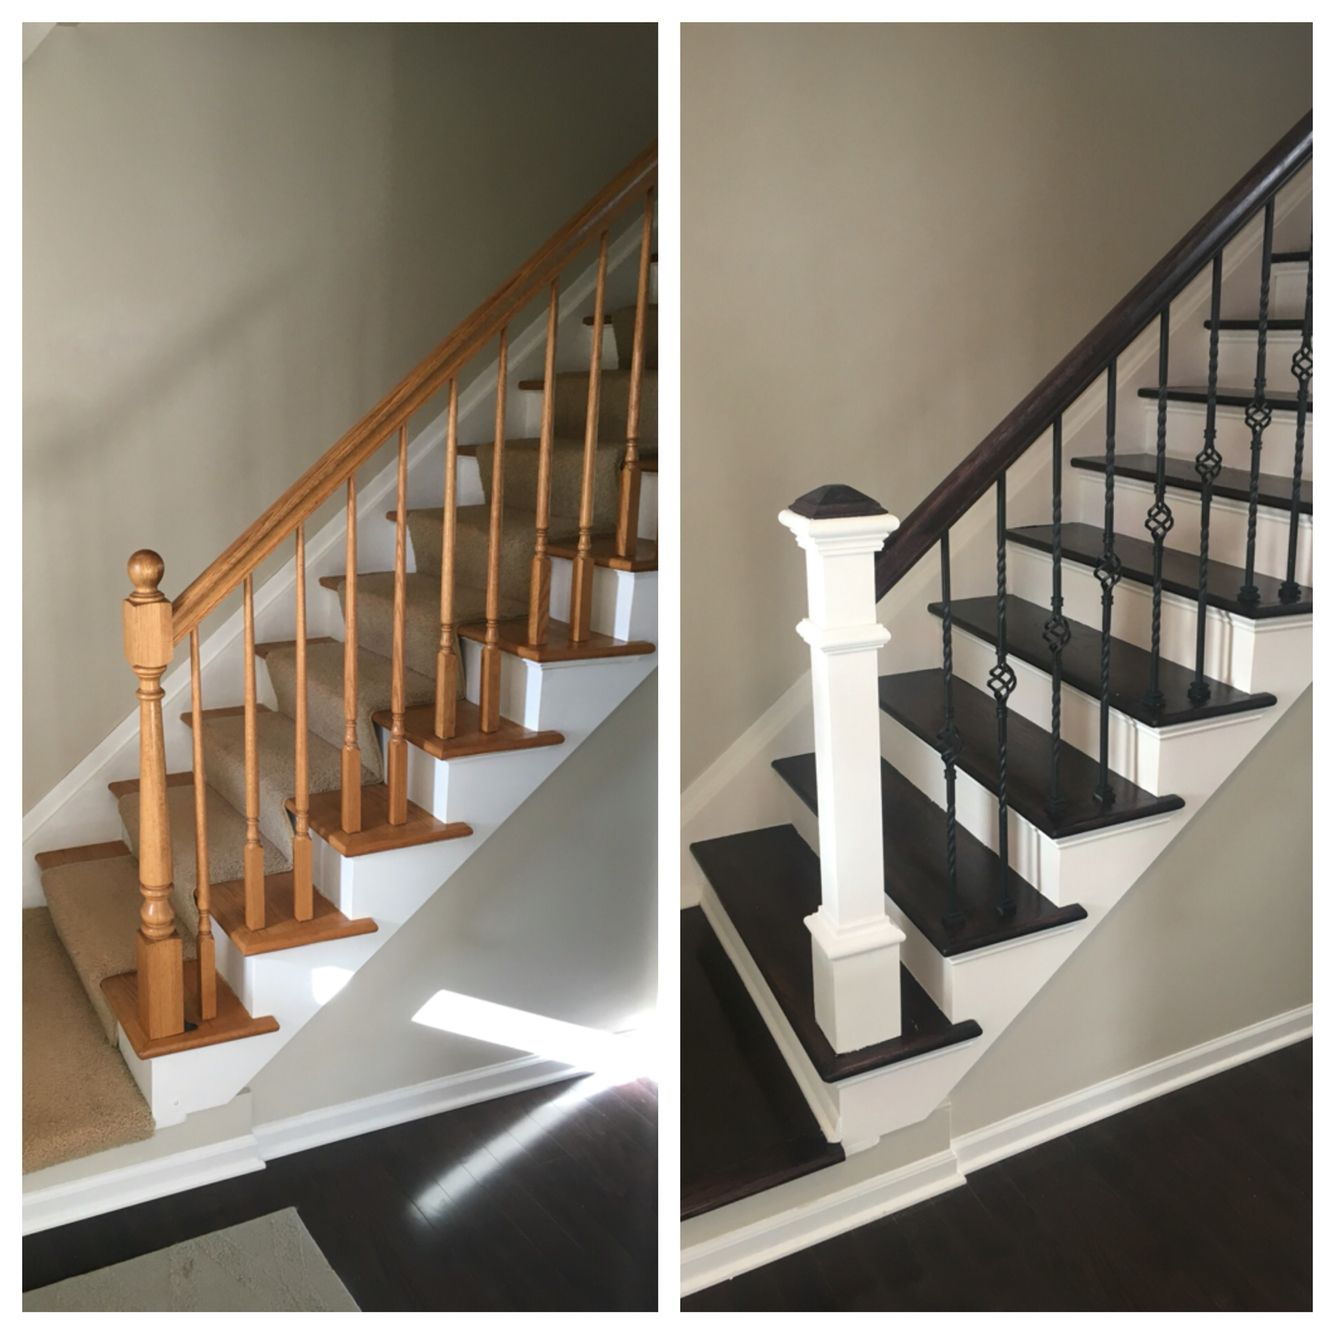 Renovating Stairs Wrought Iron Wood Floor Finishing Clean Lines